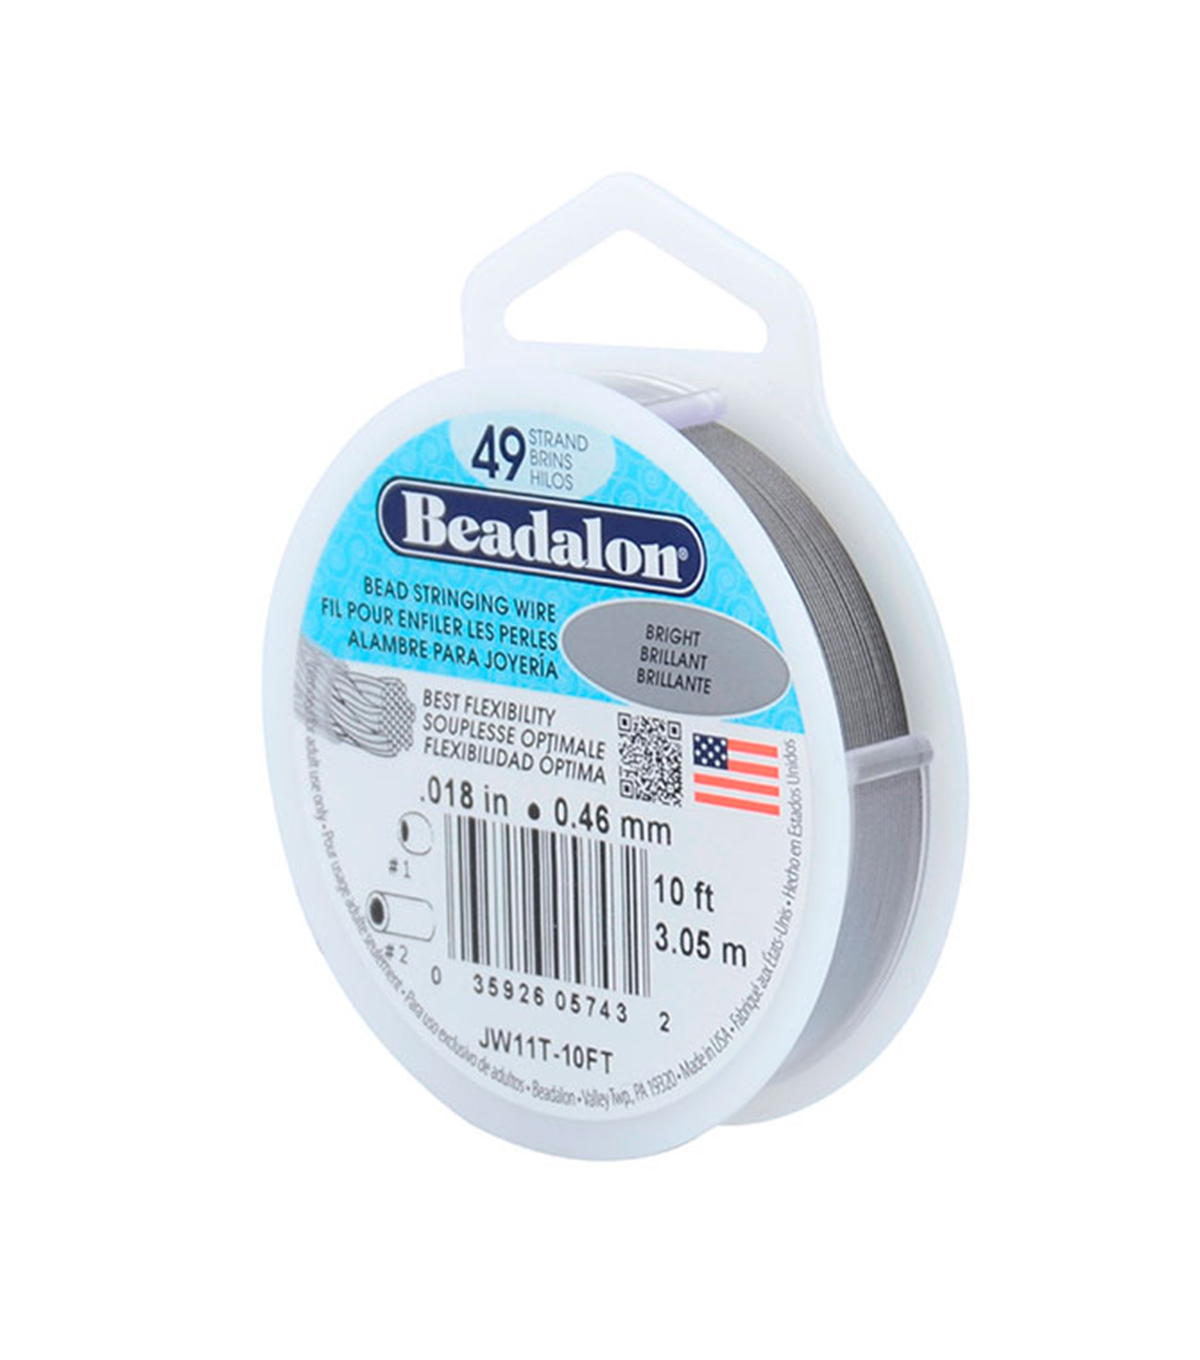 Beadalon 49 Strand .018\u0022 Wire-10FT/Bright